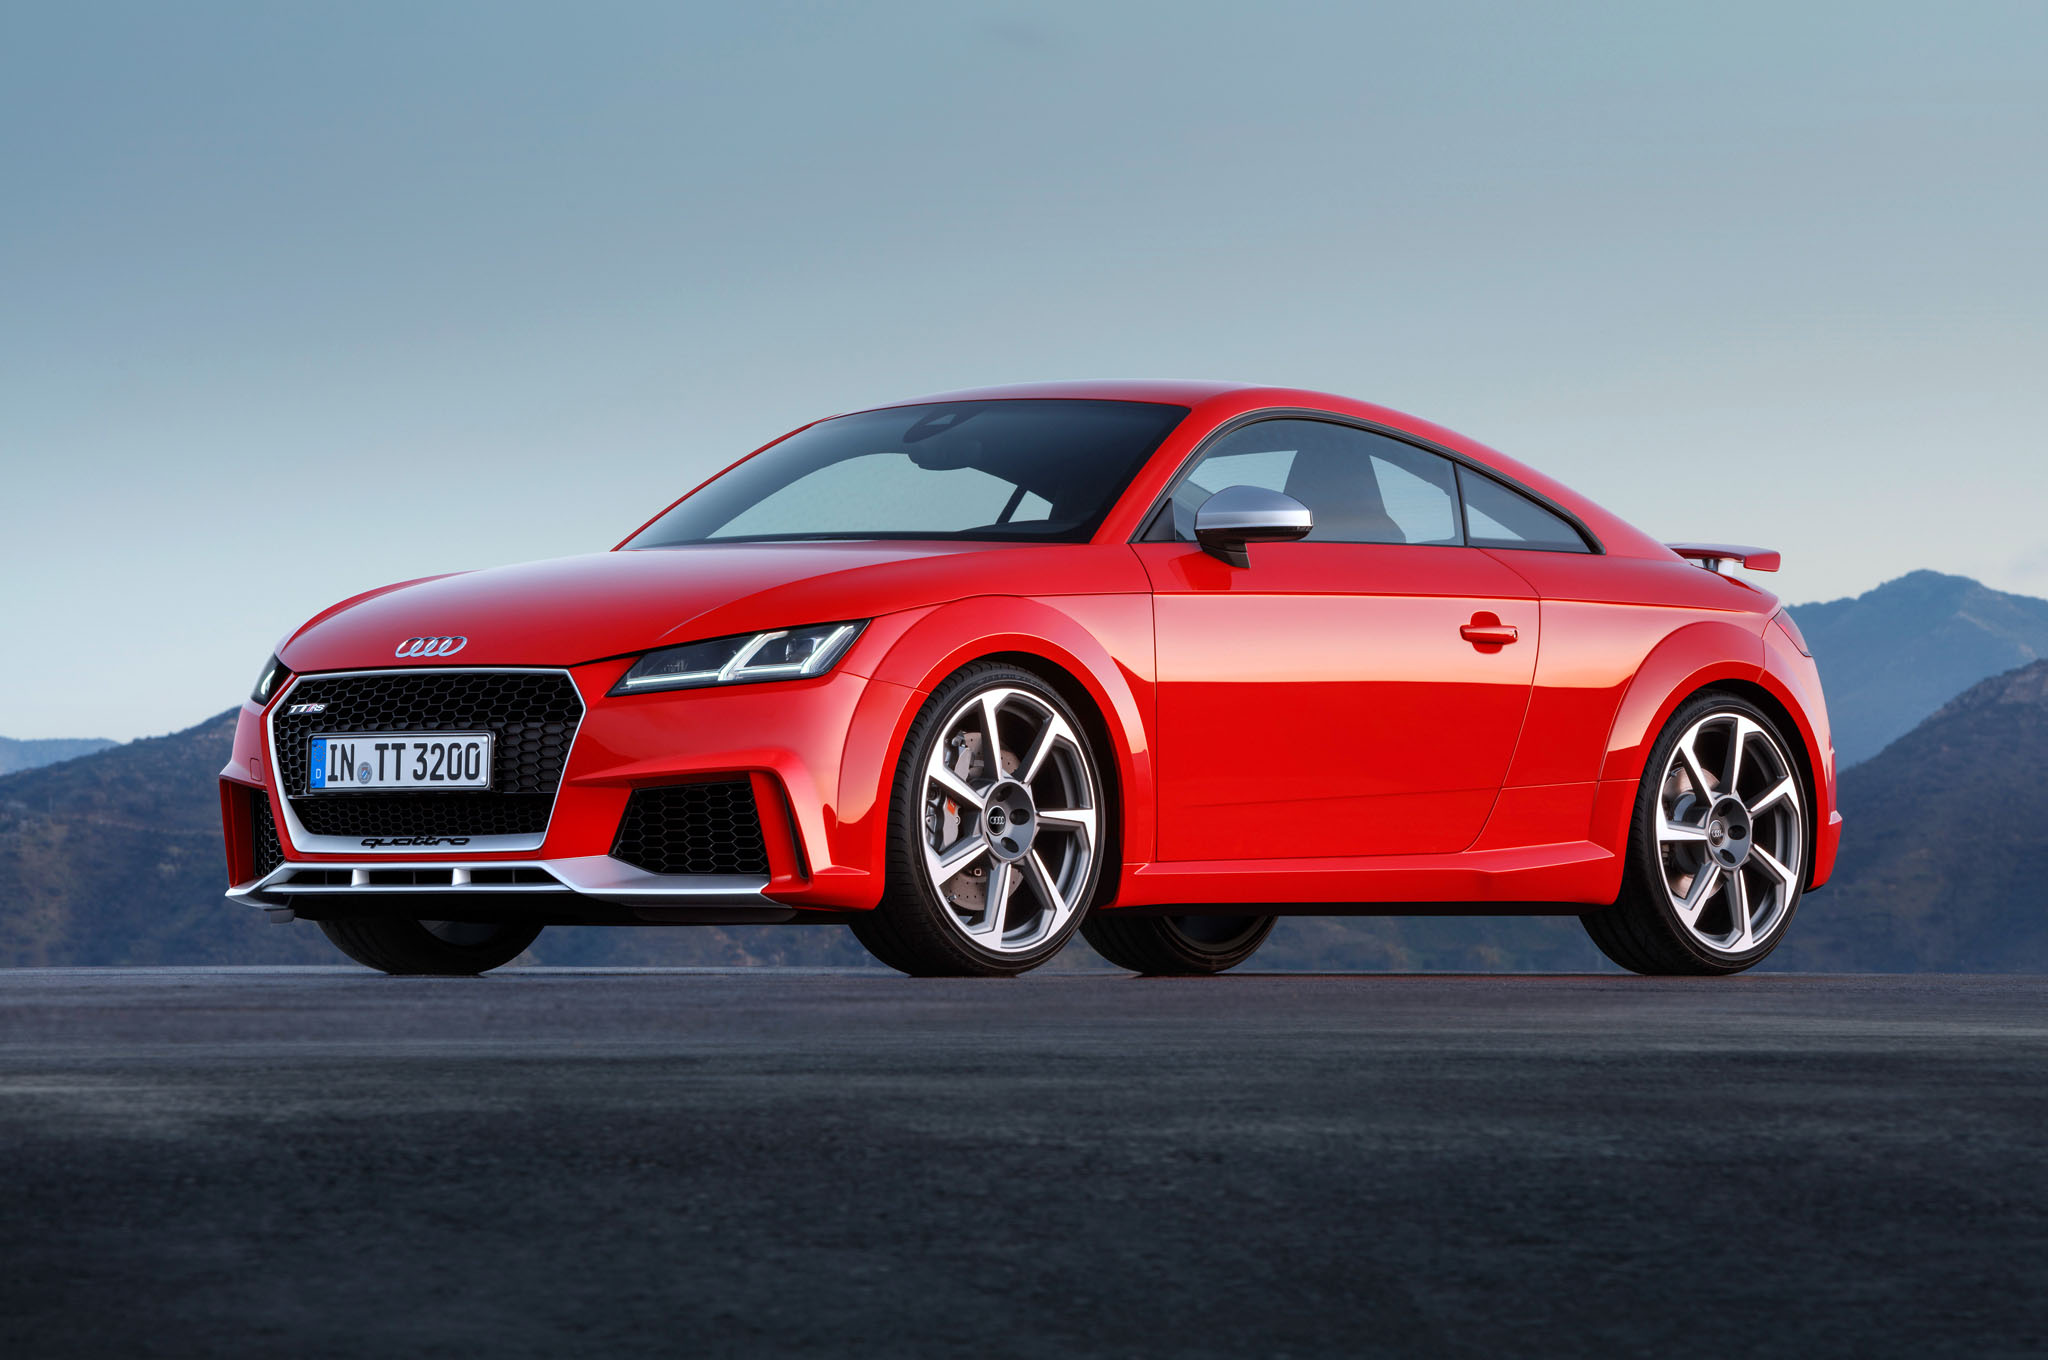 2017 Audi TT RS Coupe Background Wallpaper | HD Car Wallpapers